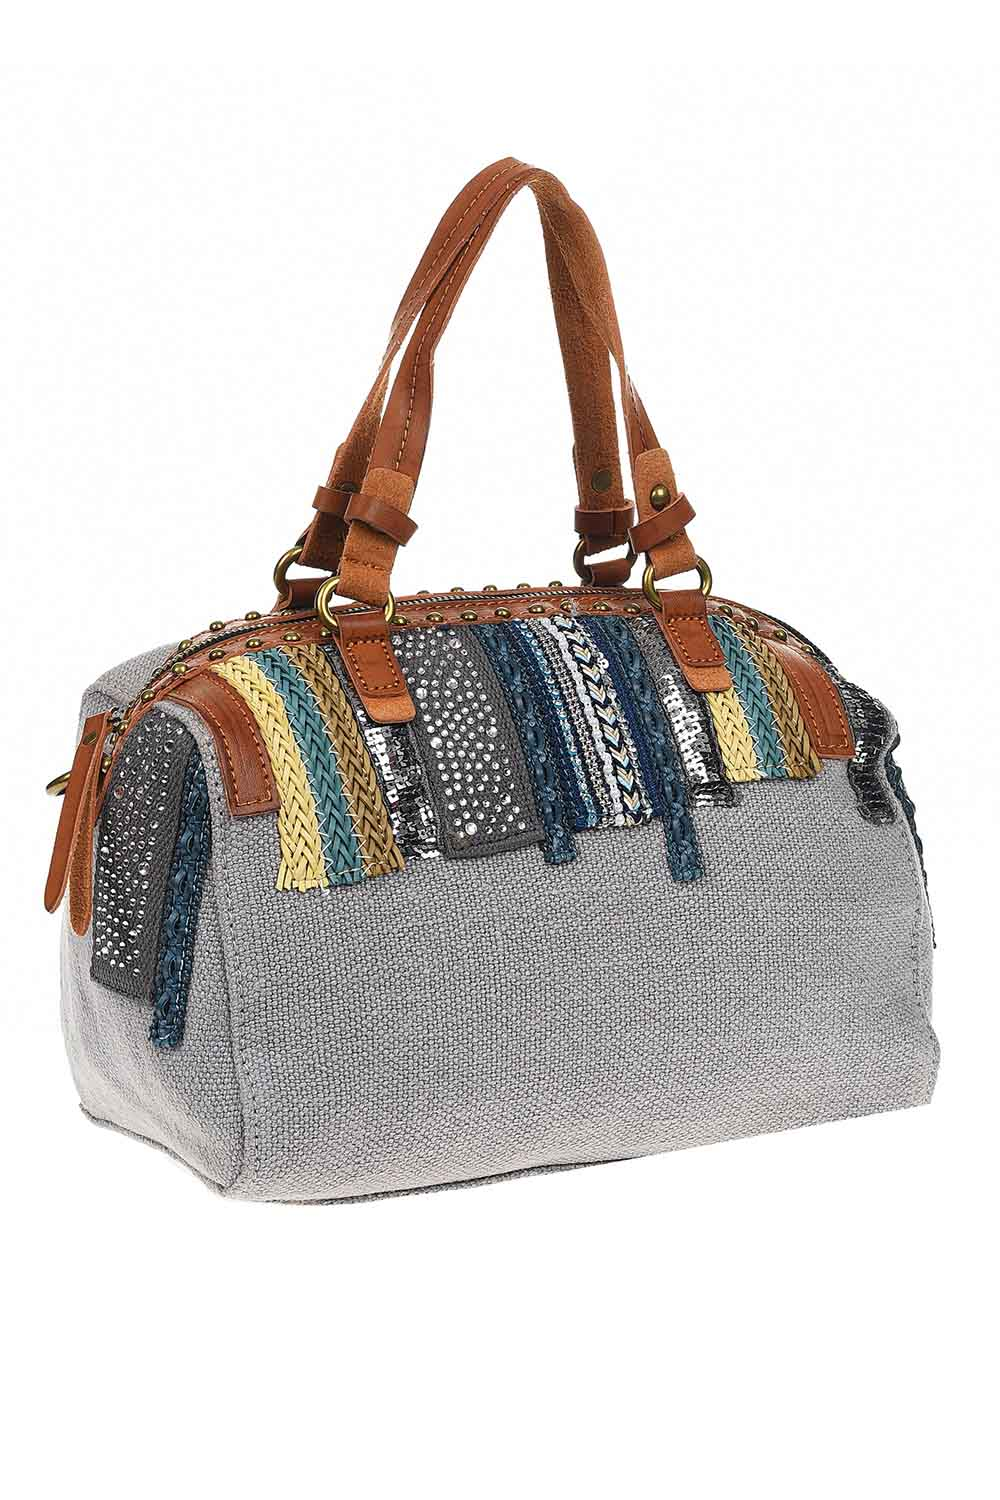 MIZALLE Linen Arm Bag (Grey) (1)